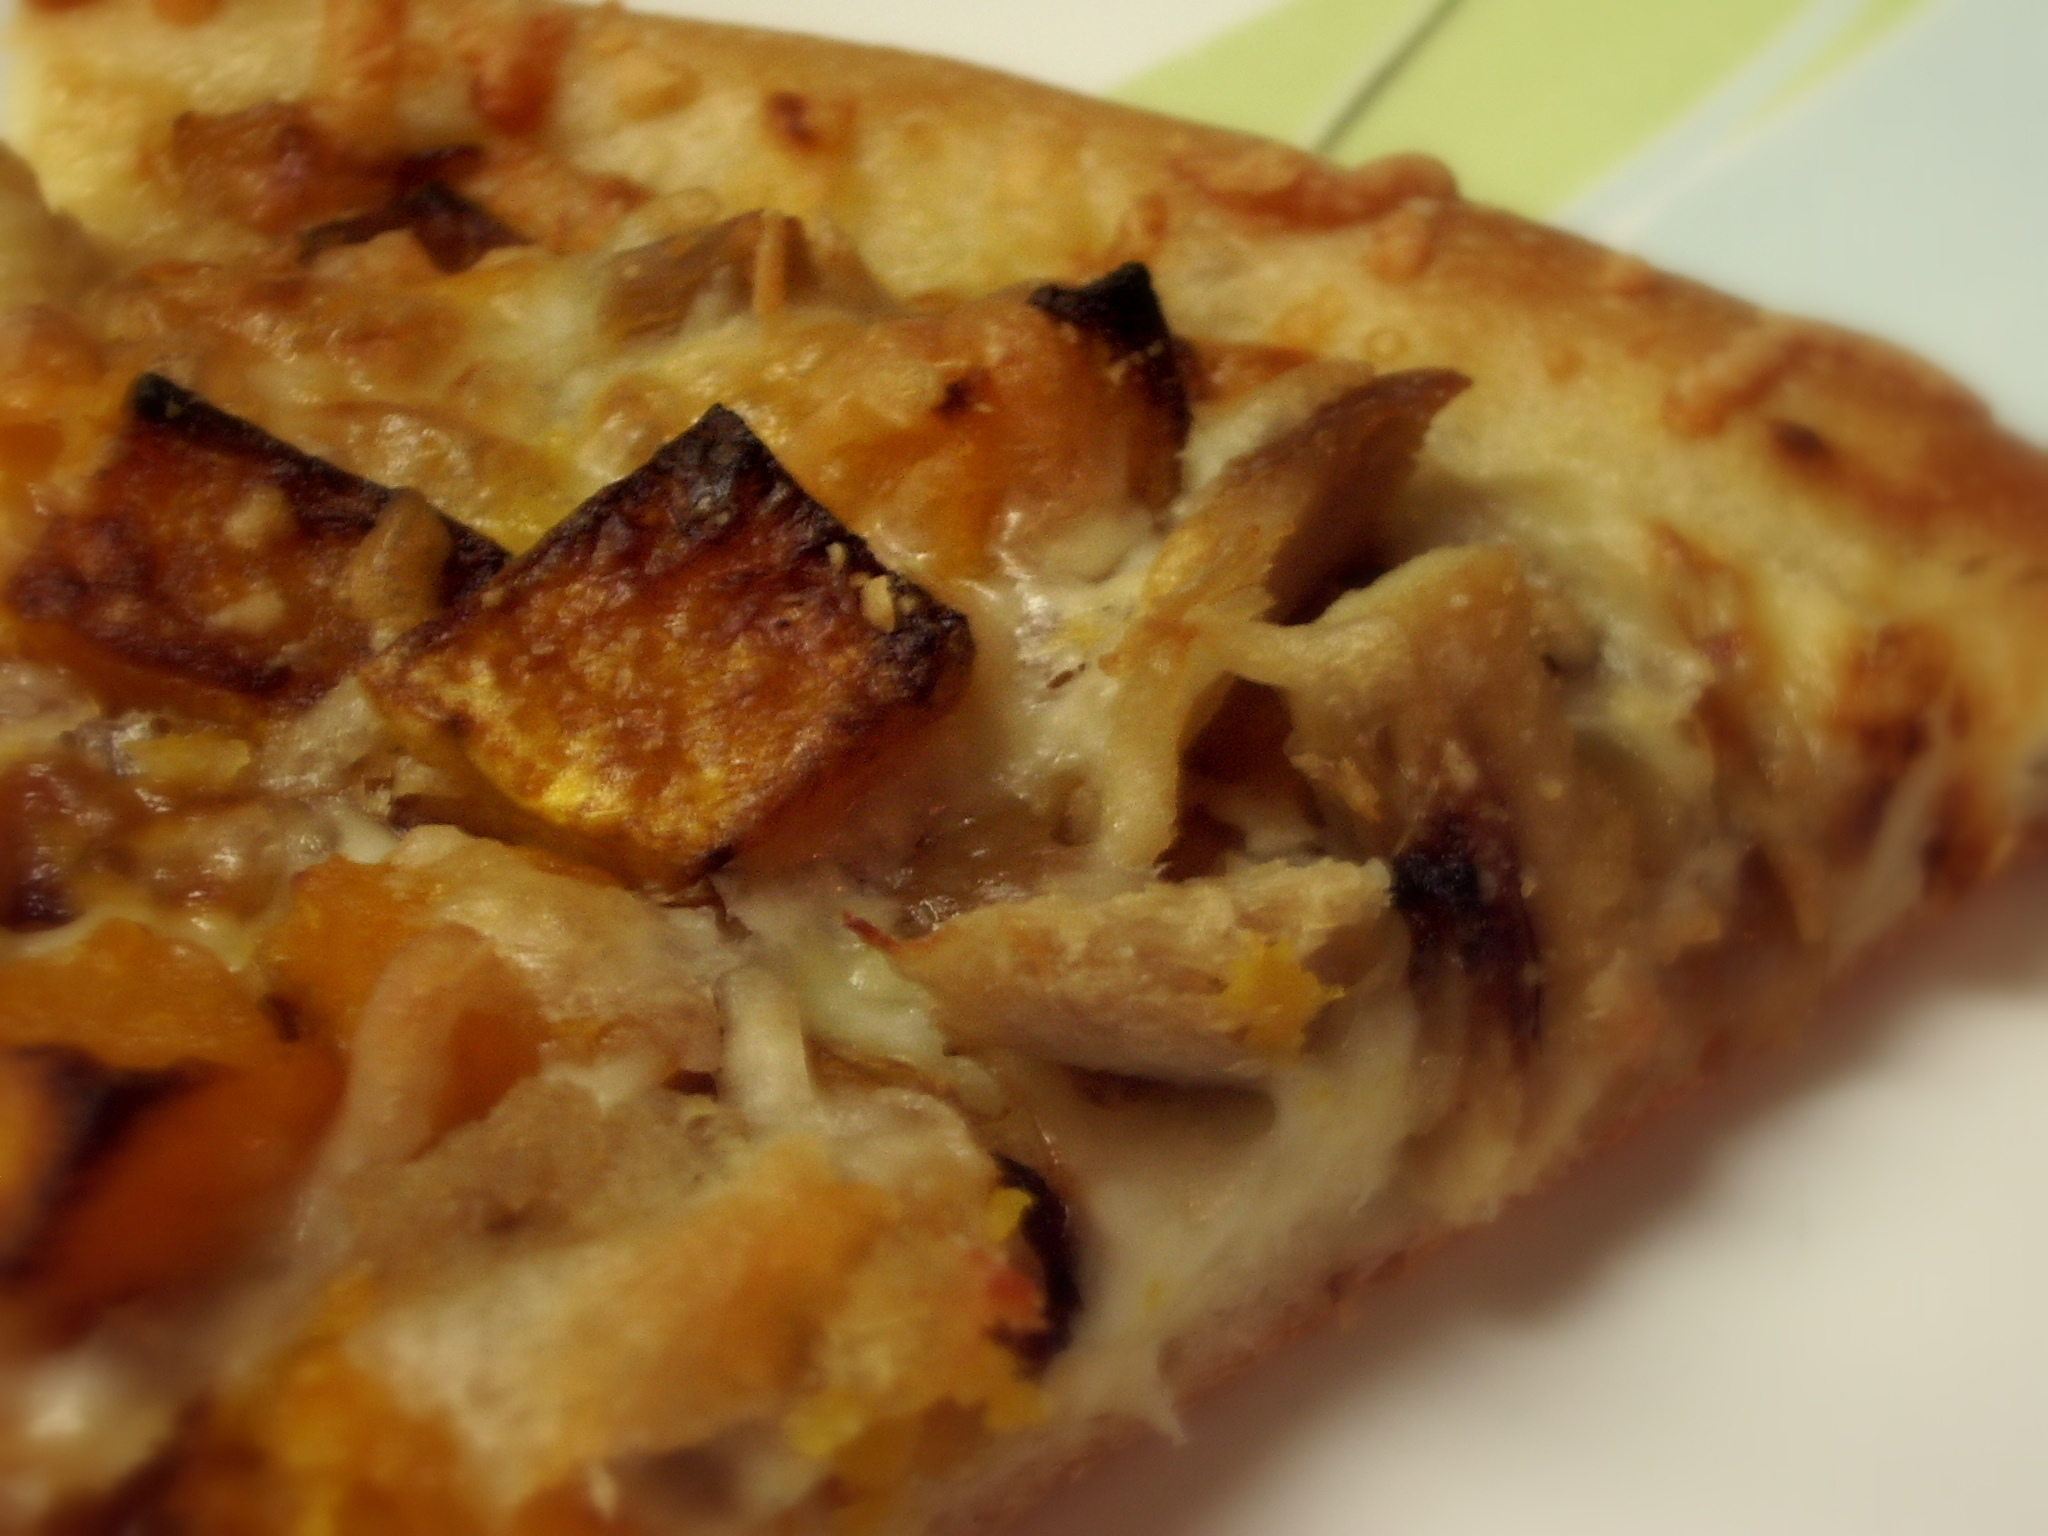 Butternut Squash Pizza with Chicken and Caramelized Onions